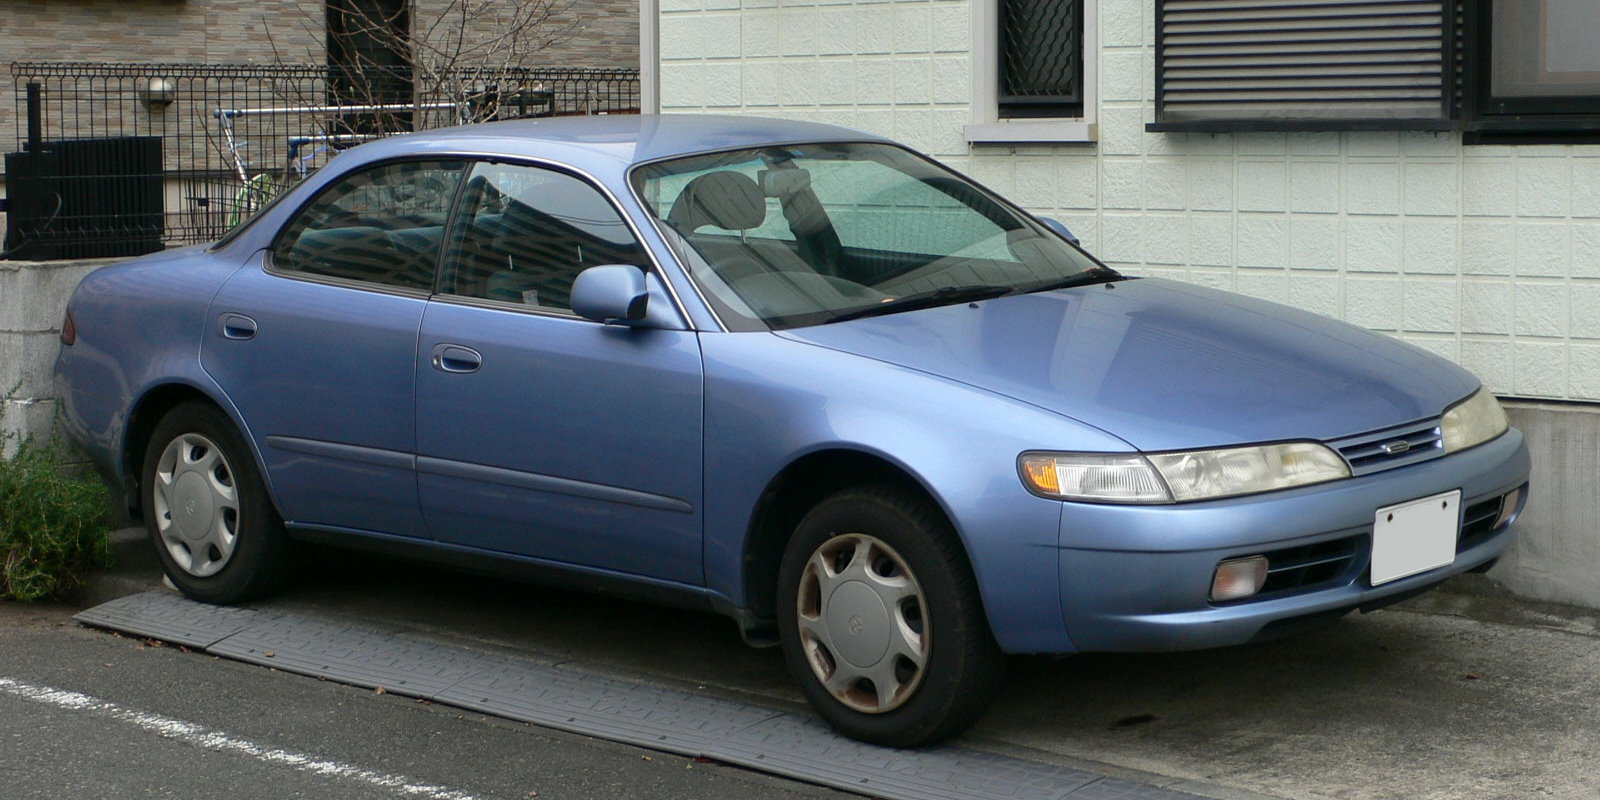 Description 1994 Toyota Corolla-Ceres 01.jpg